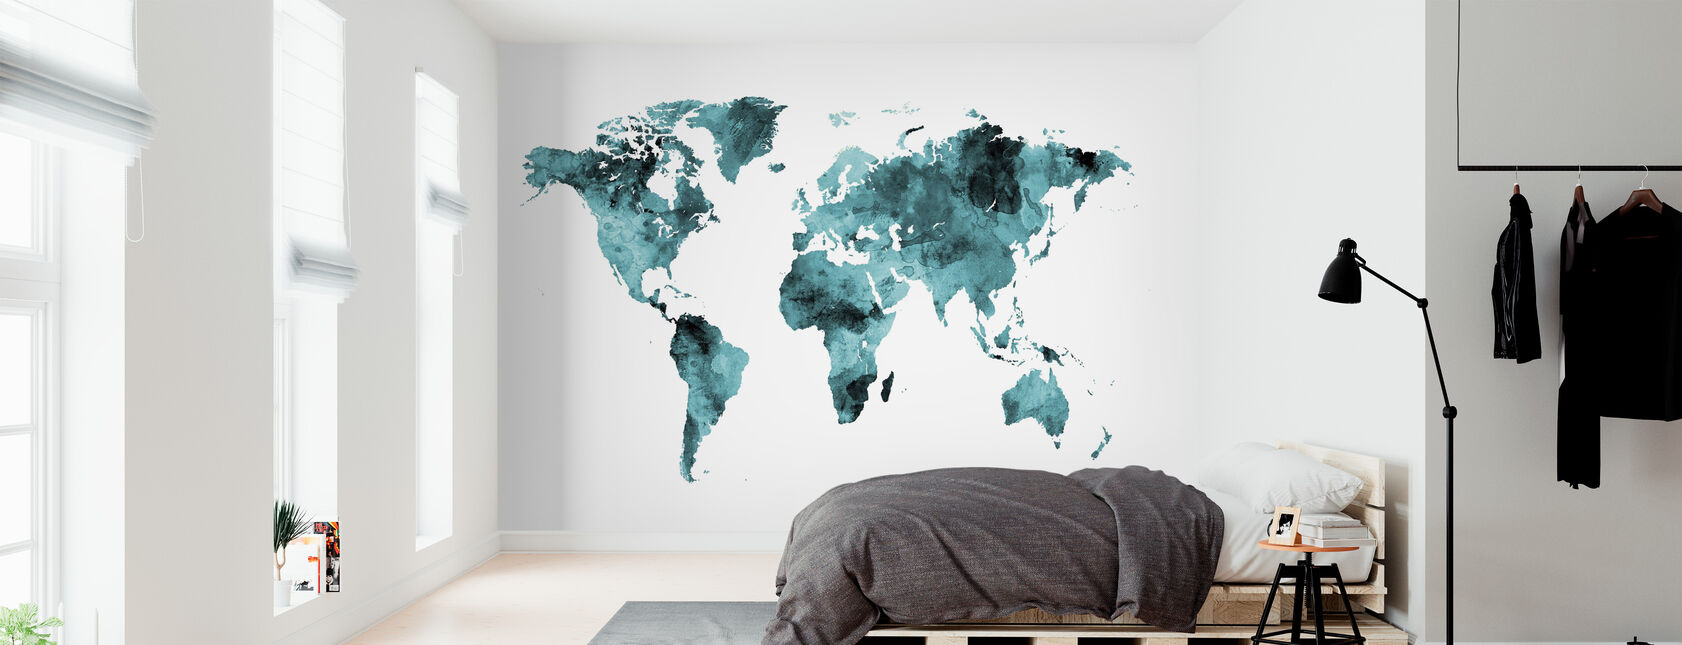 Watercolour World Map Turquoise - Wallpaper - Bedroom